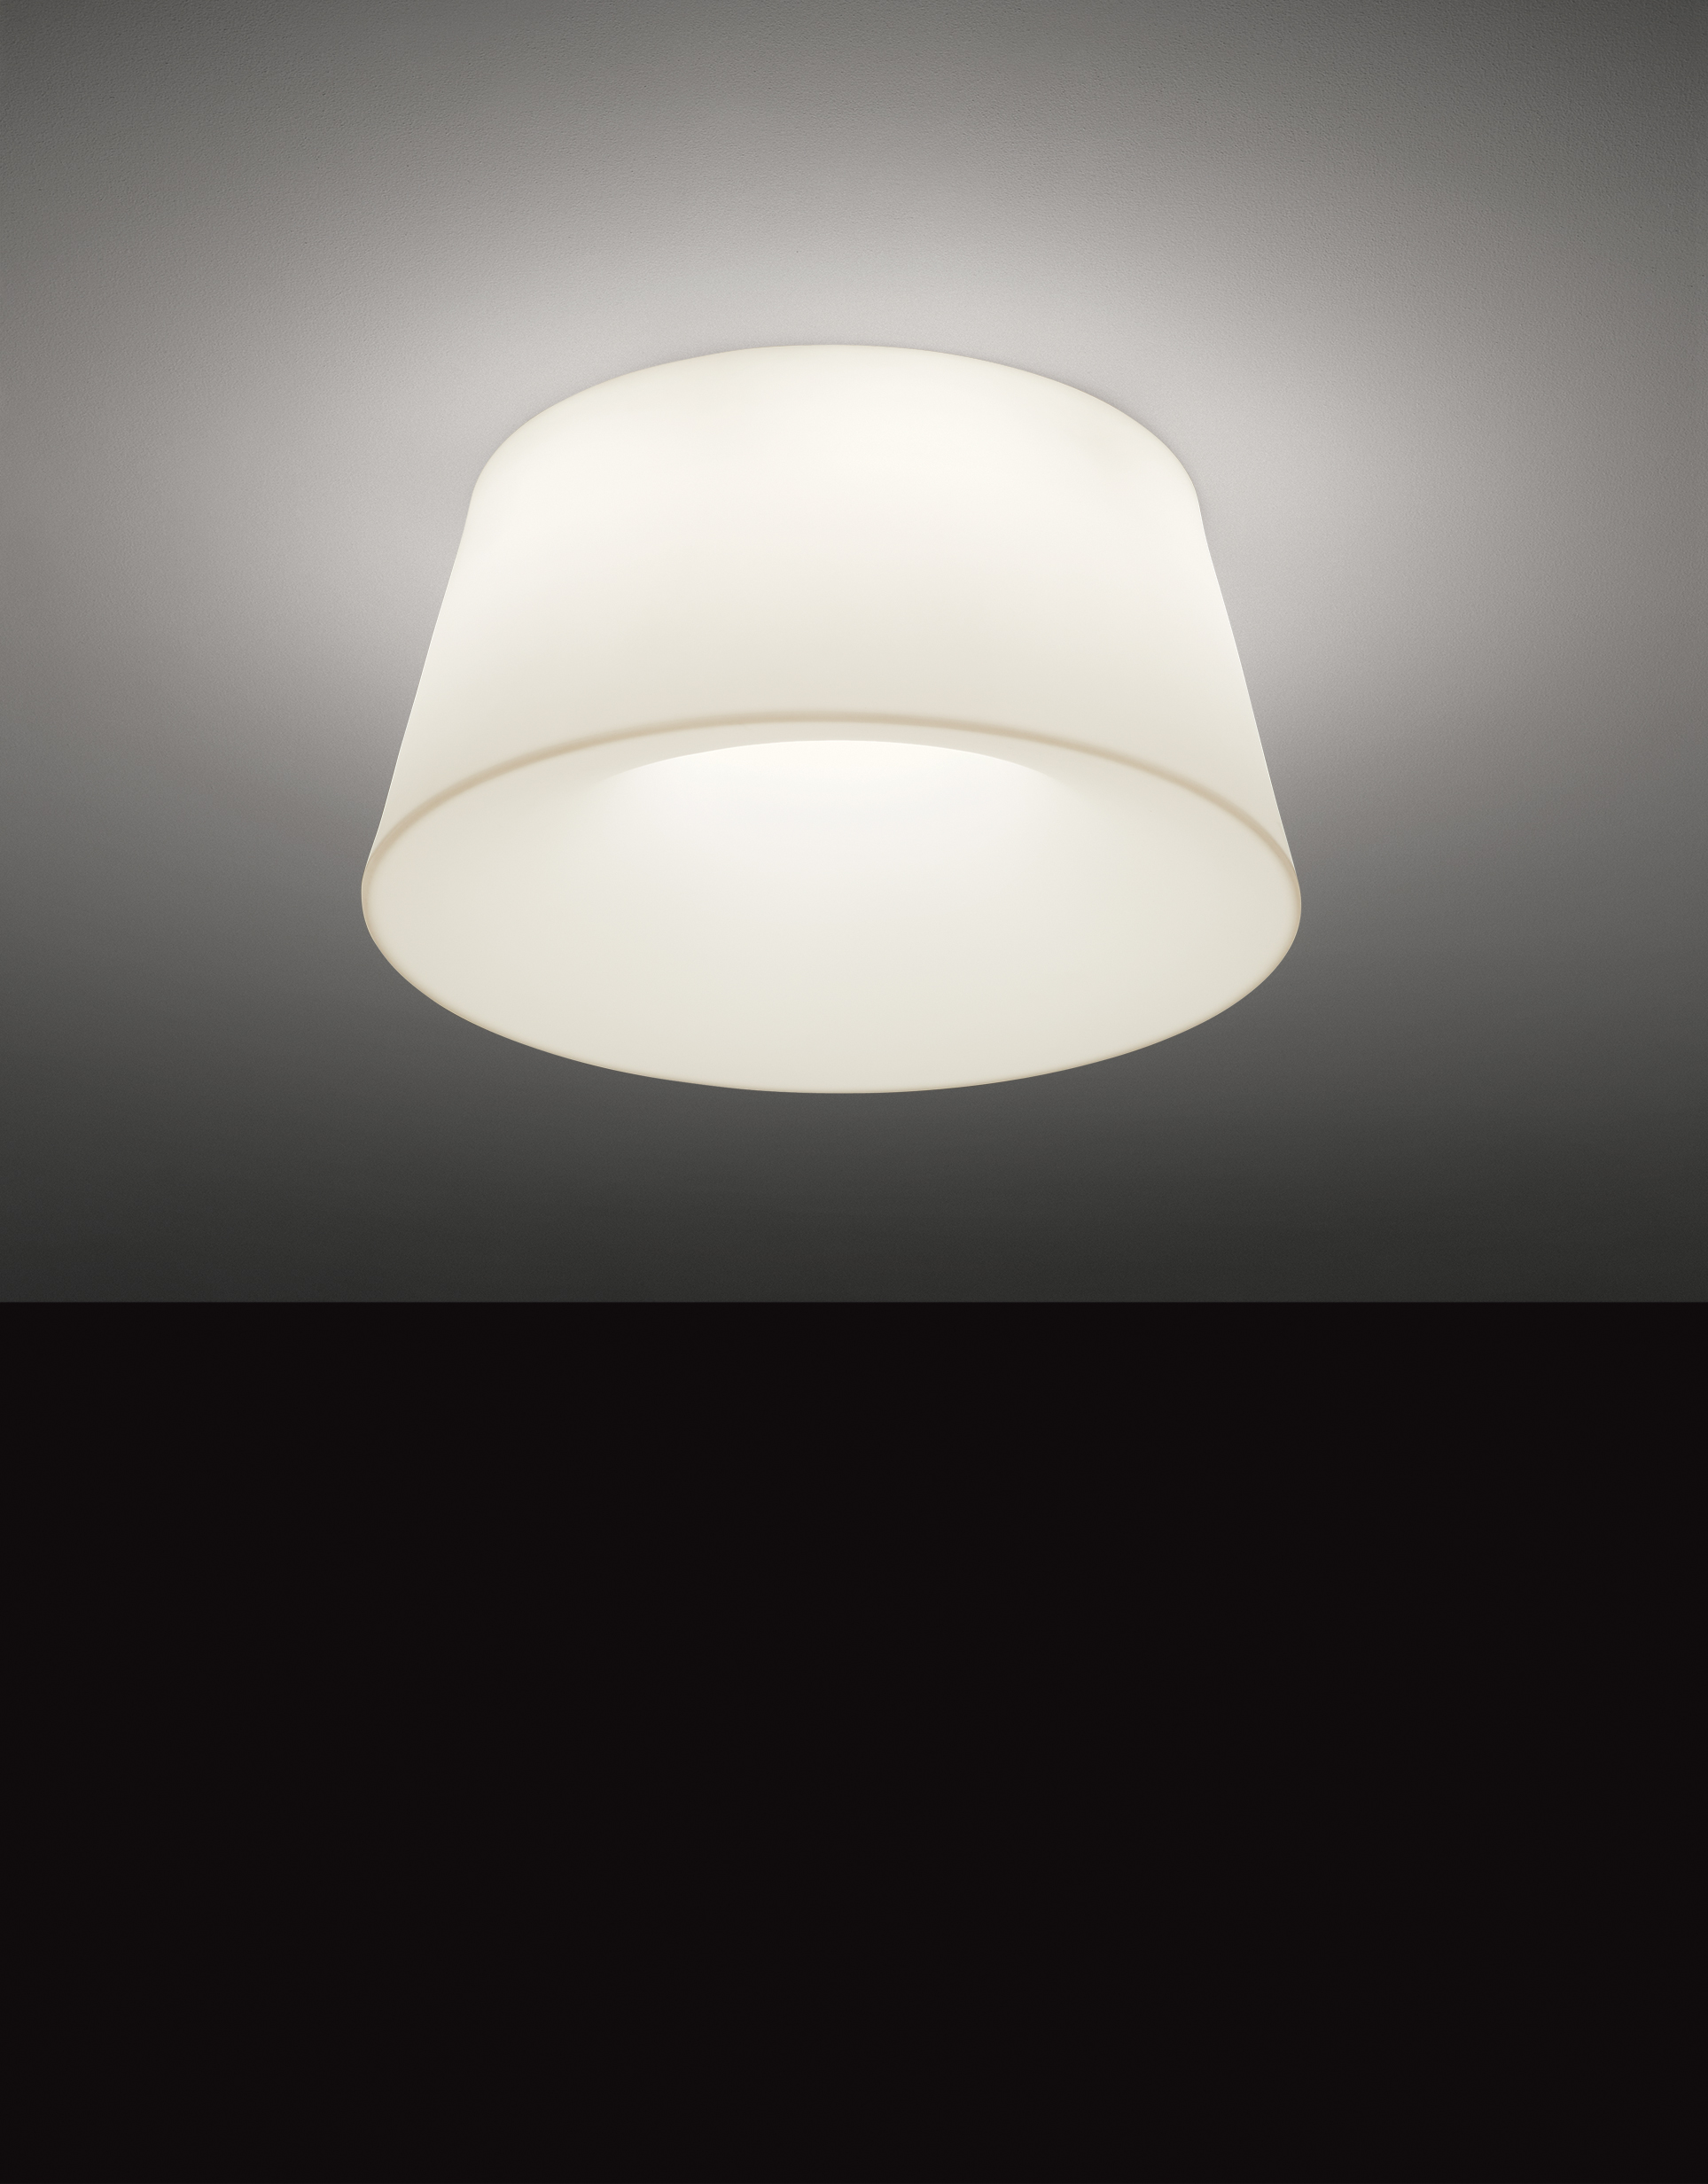 Loop Ceiling Ocl Architectural Lighting